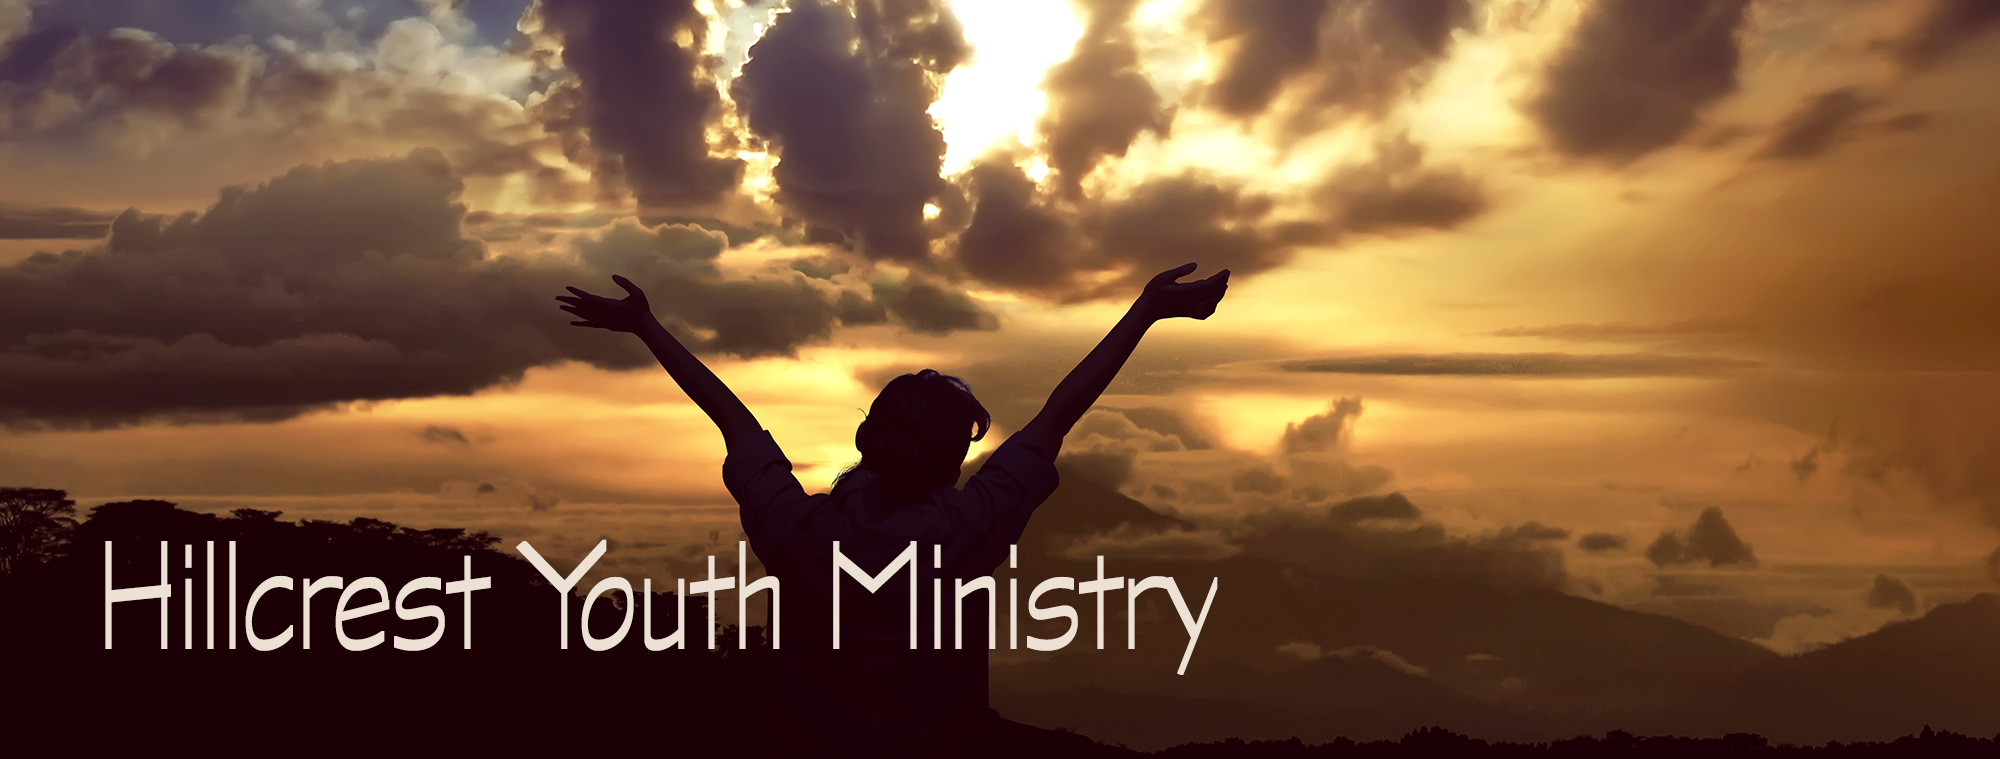 Hillcrest Youth Ministry